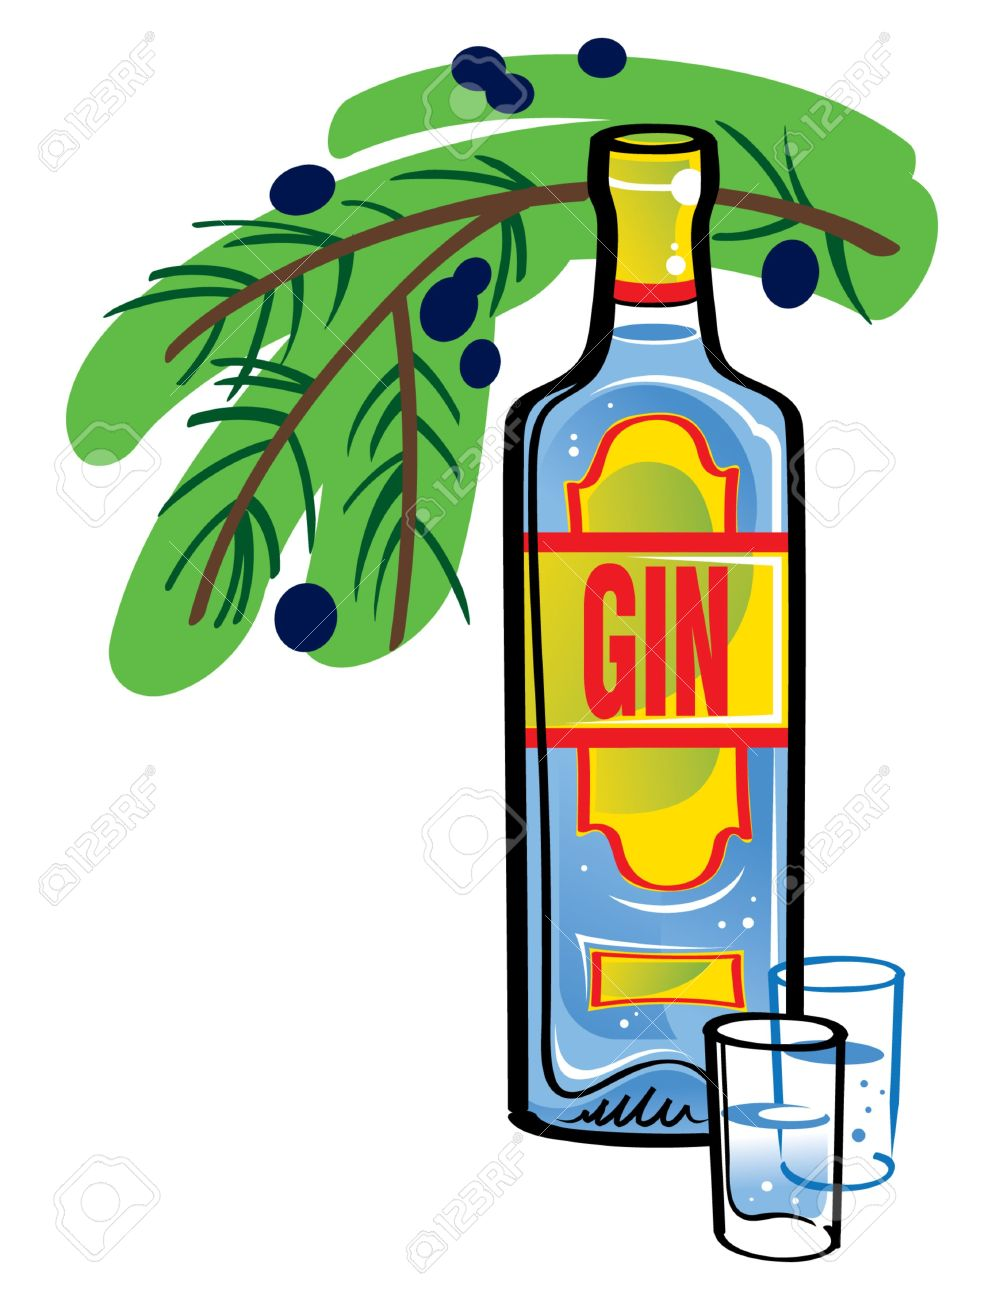 Bottle Of Gin With Juniper Branch Royalty Free Cliparts, Vectors.